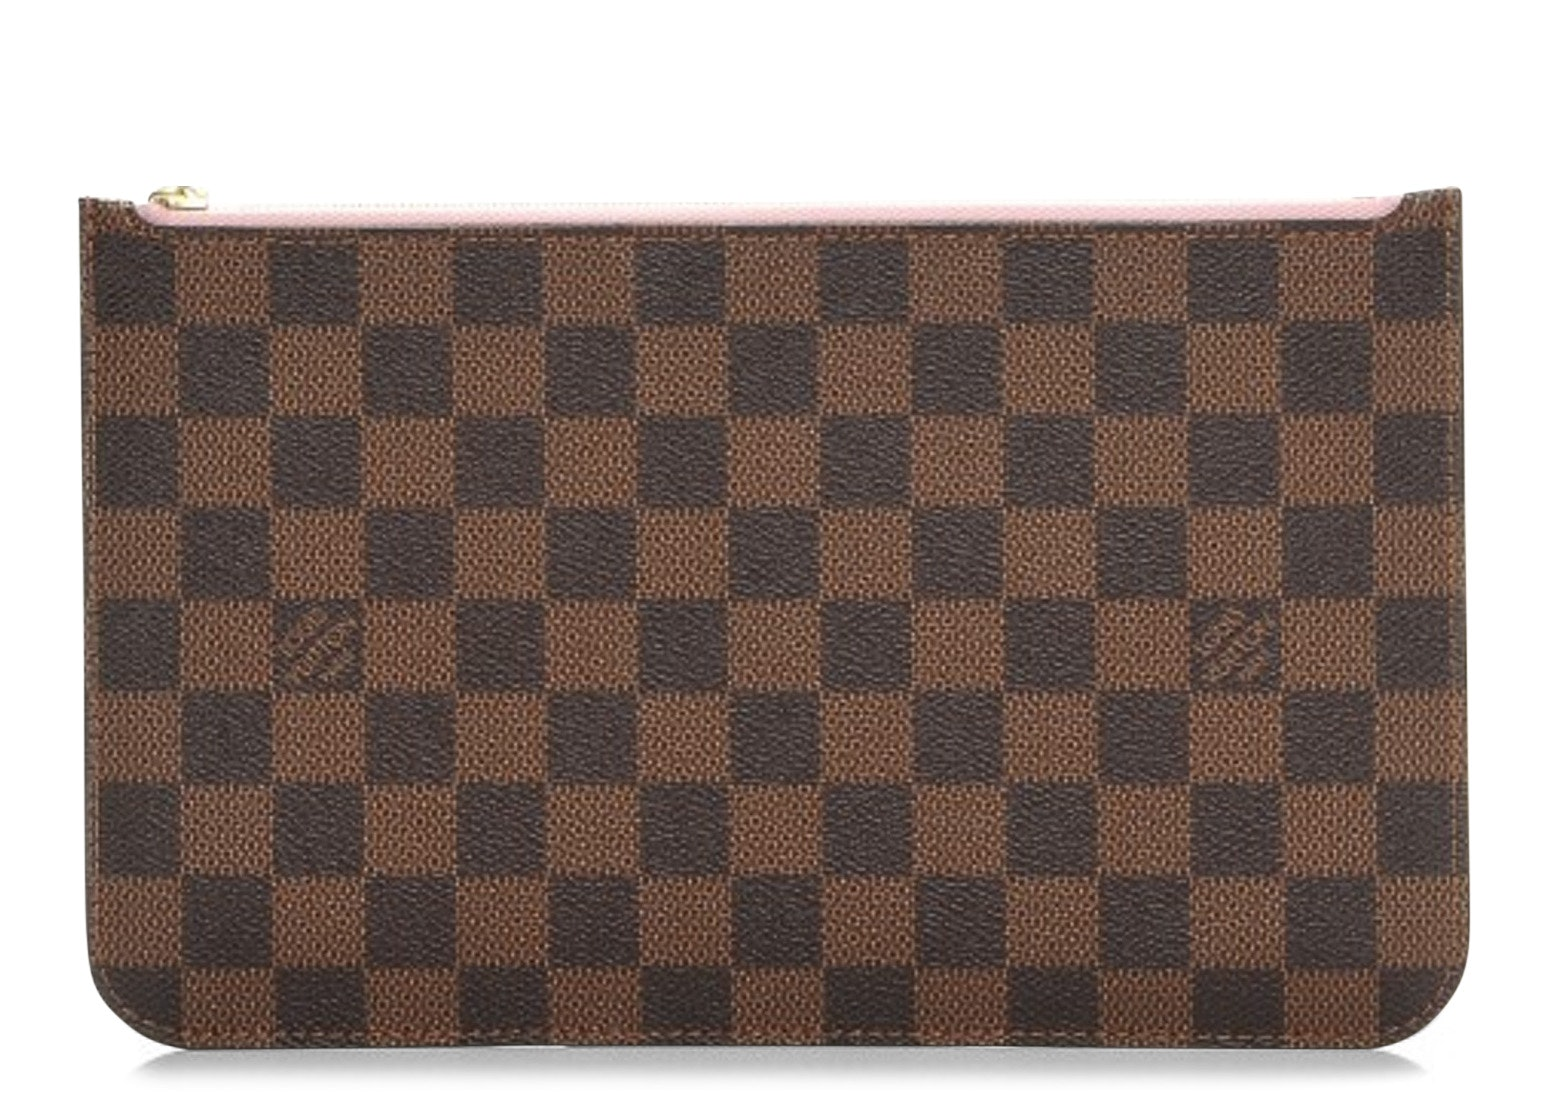 Damier Ebene Rose Ballerine Brown/Pink